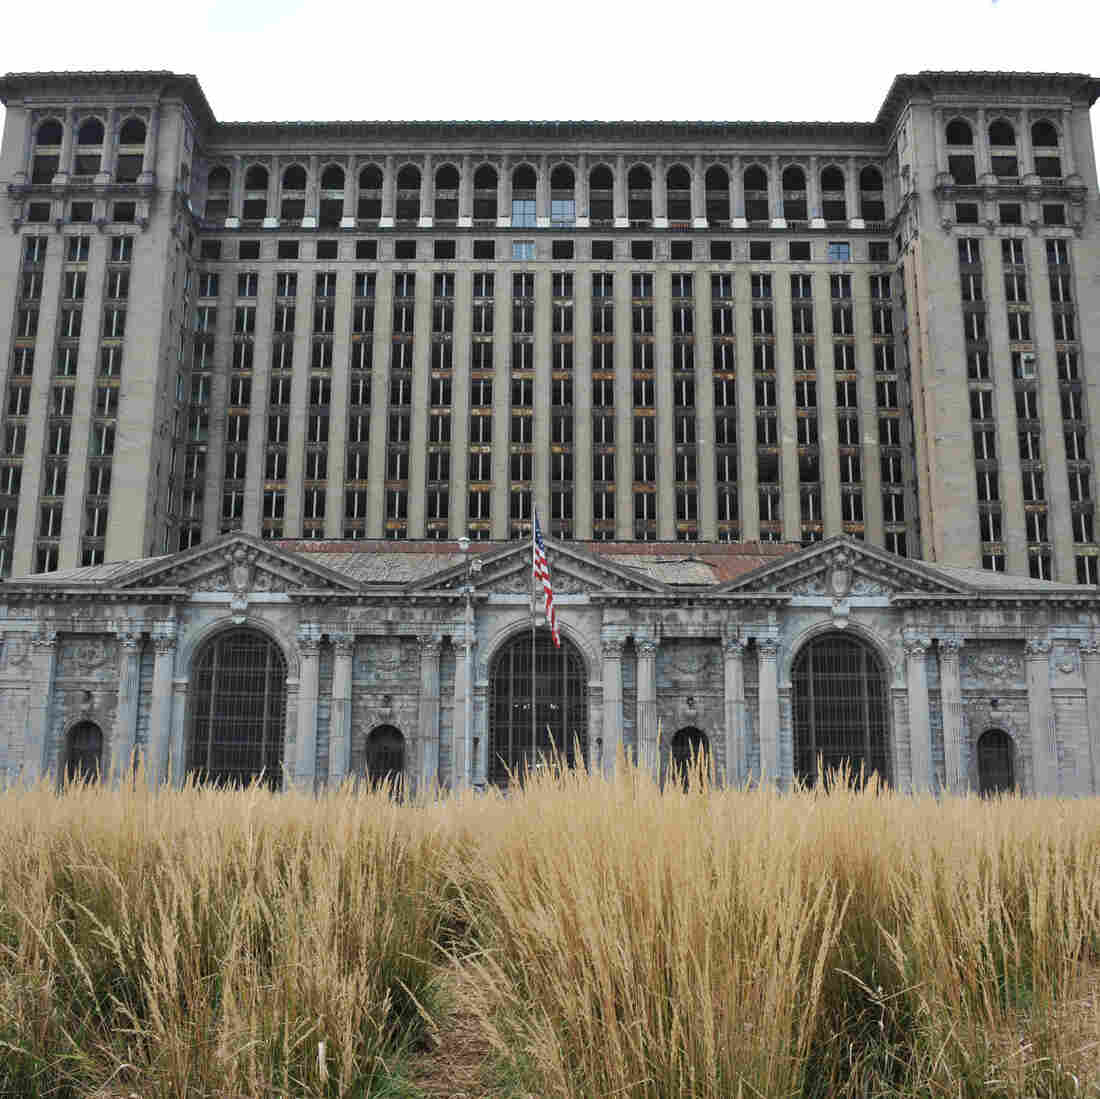 Chinese Investors Aren't Snatching Up Detroit Property, Yet